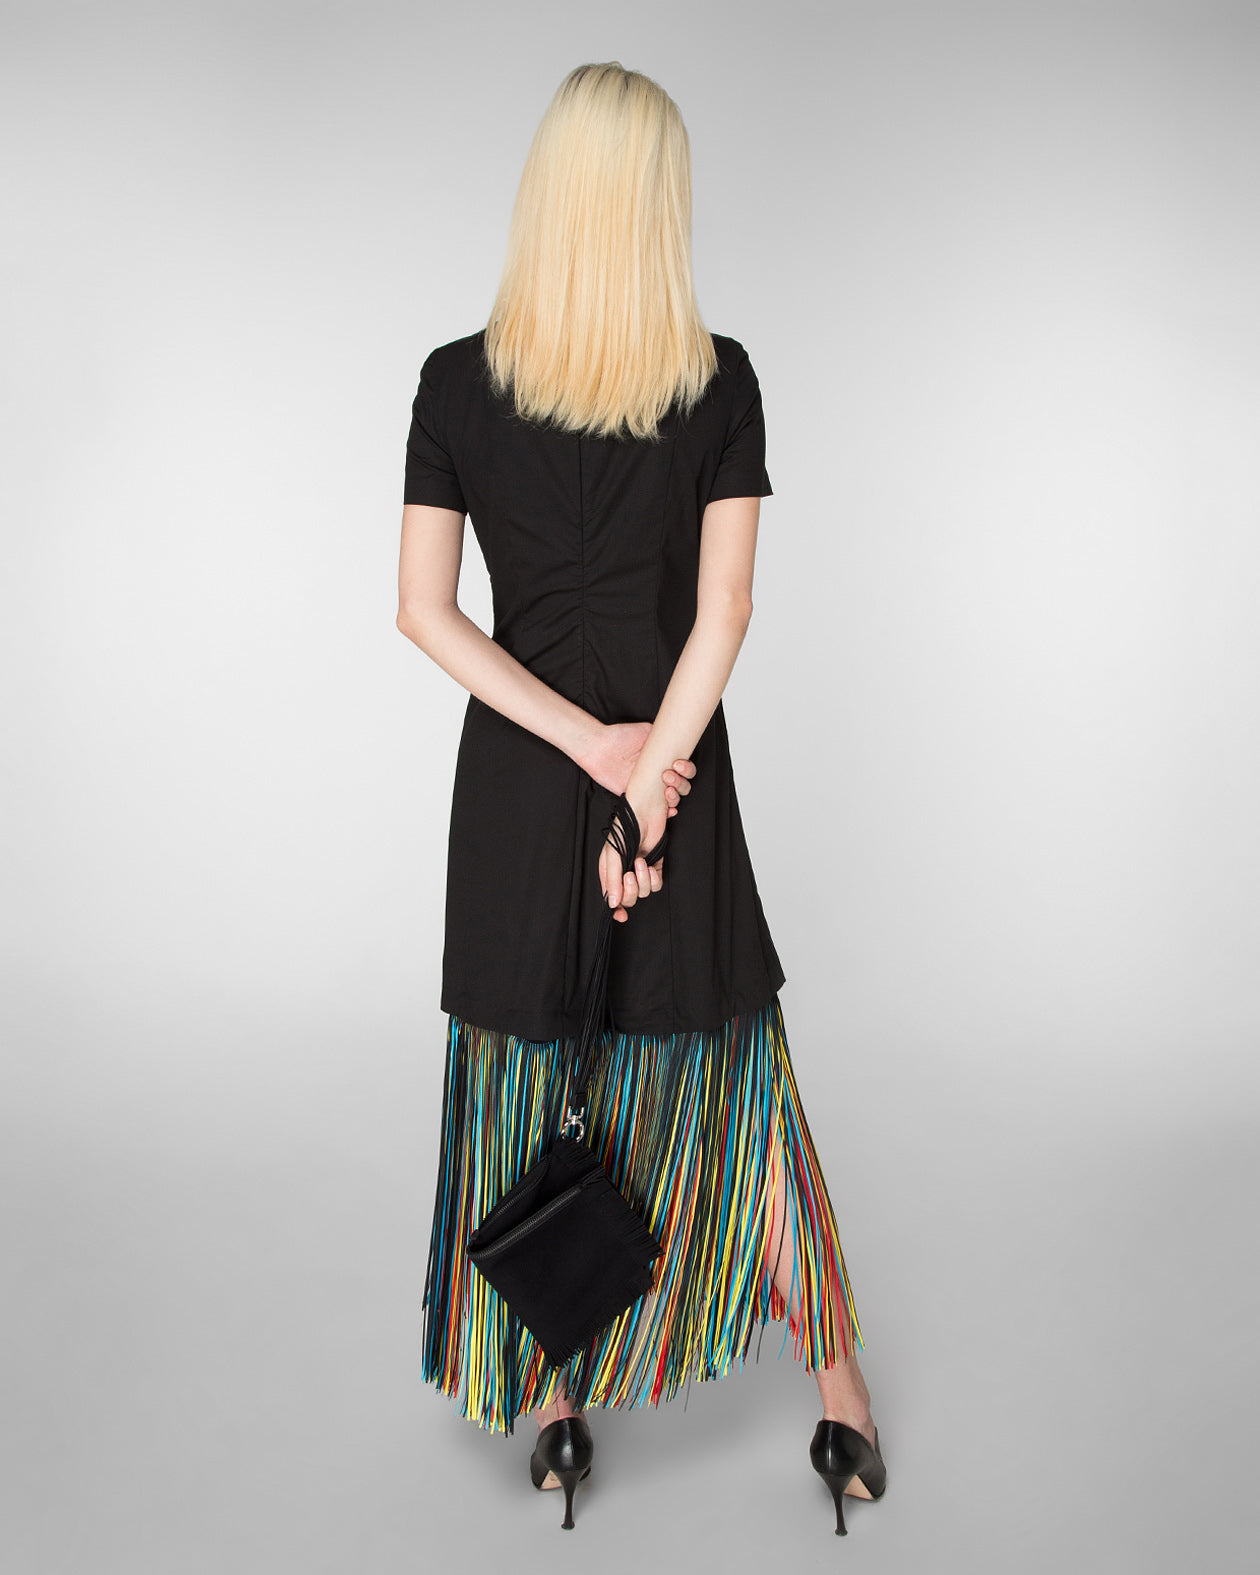 Short sleeve dress with laser-cut fringe hem